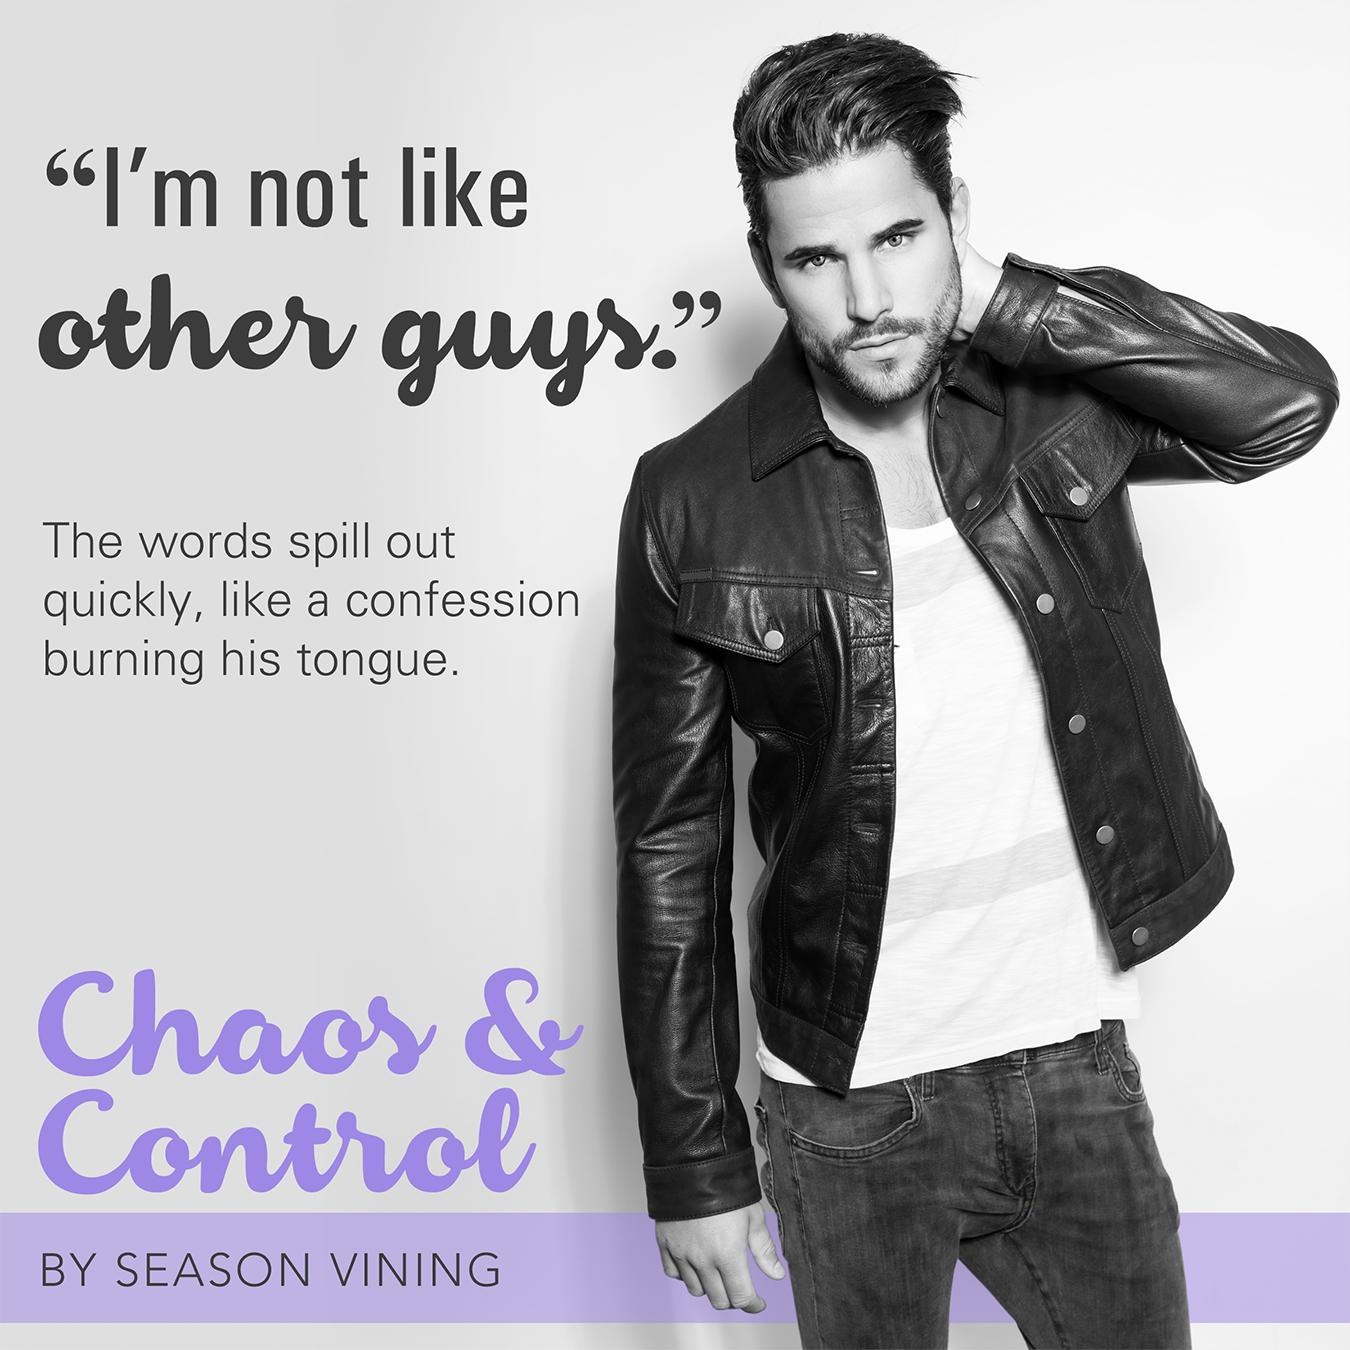 Pin By Season Vining On Chaos And Control Book 1 Books Confessions [ 1350 x 1350 Pixel ]